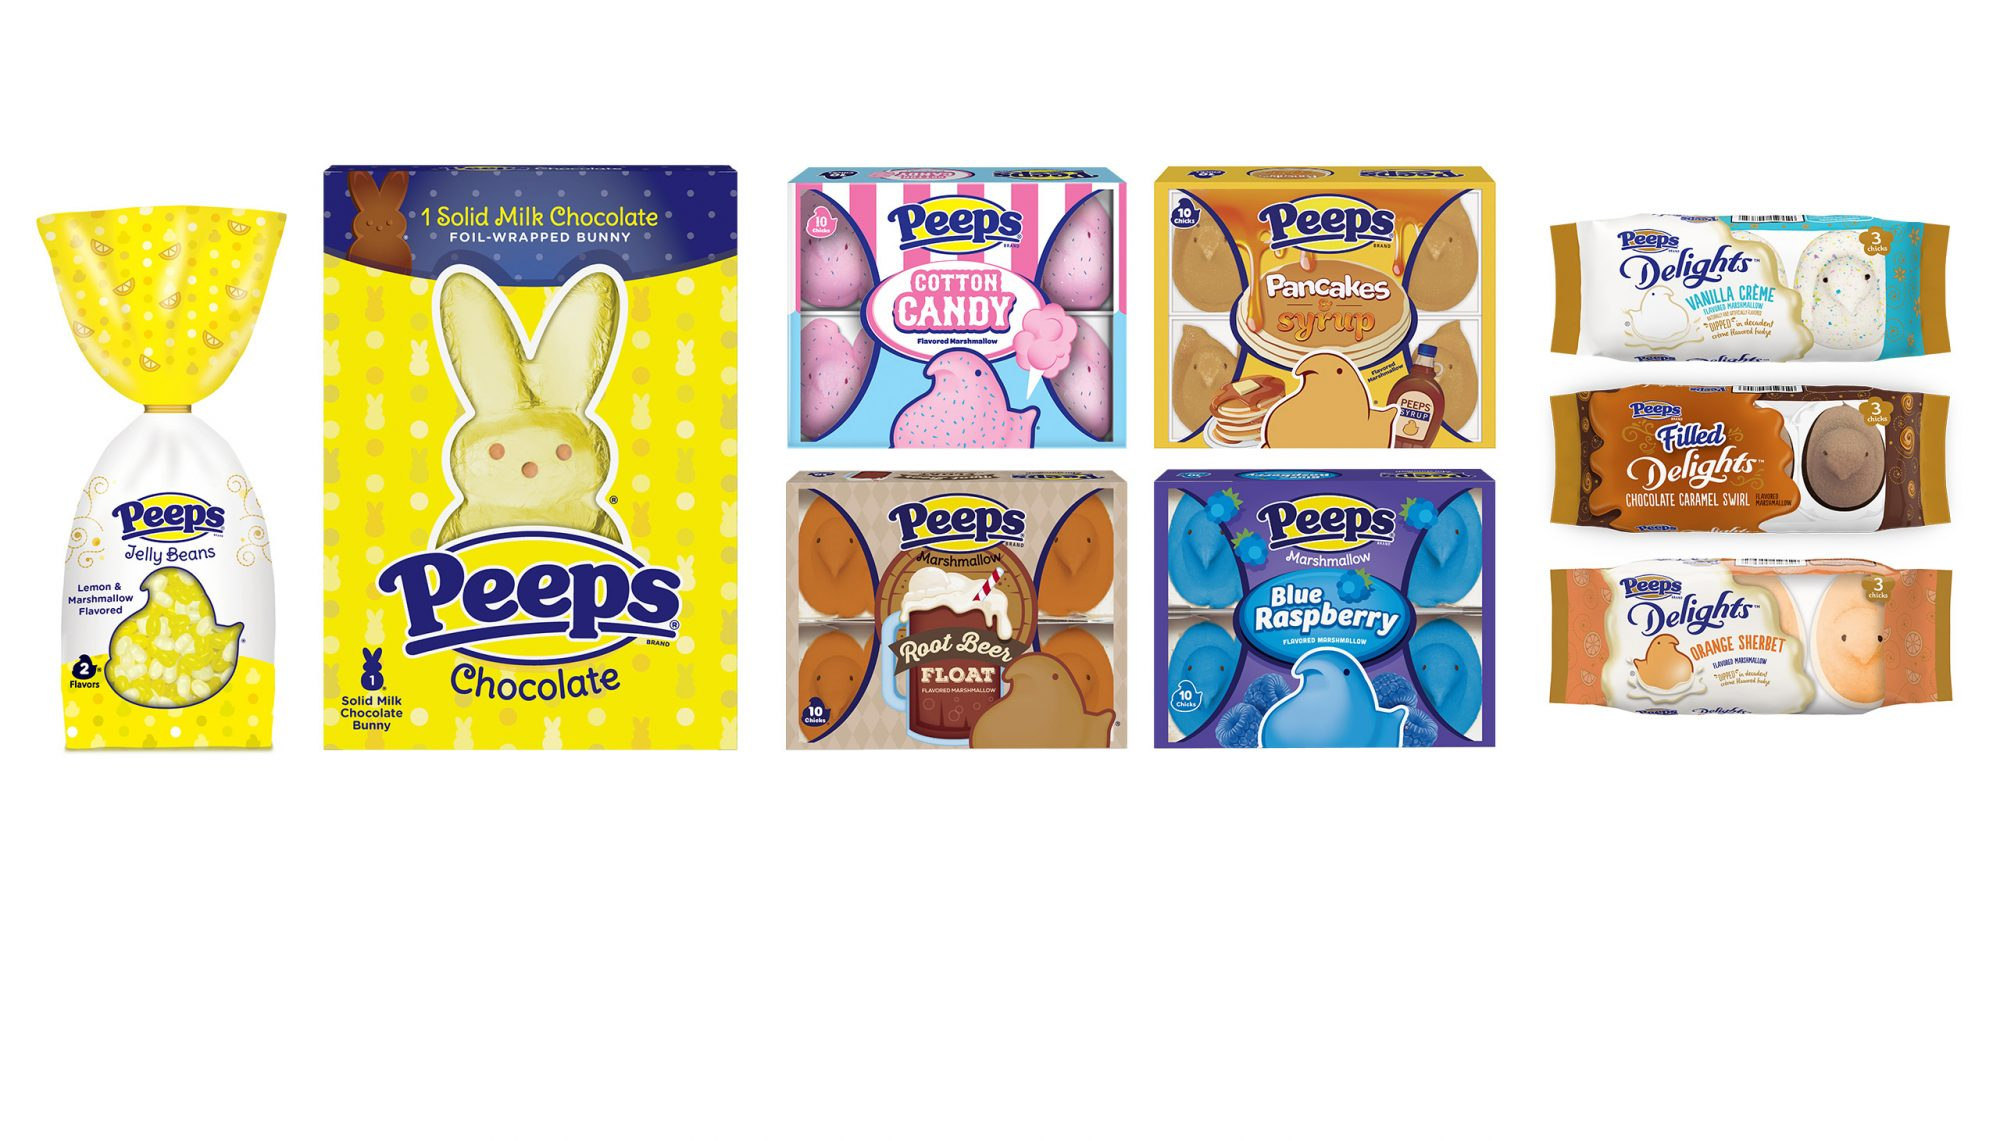 New Peeps Products.